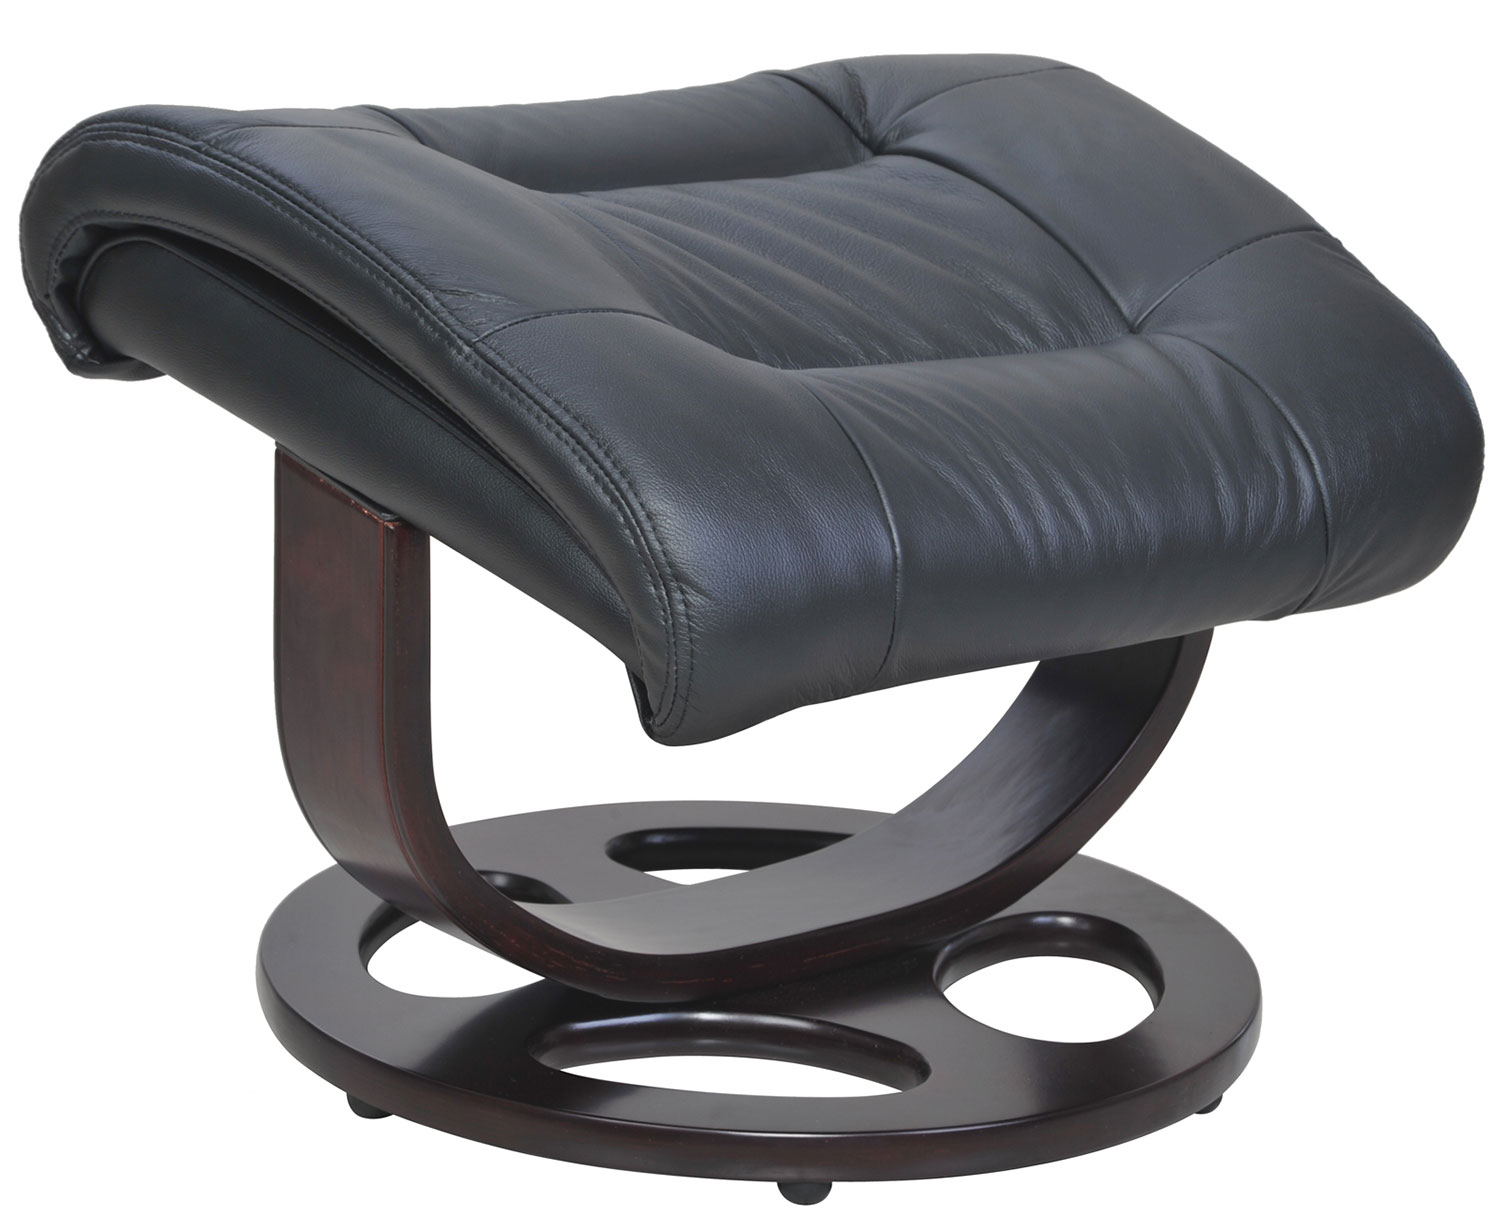 Barcalounger Jacque Pedestal Recliner Chair and Ottoman - Hilton Black/Leather Match